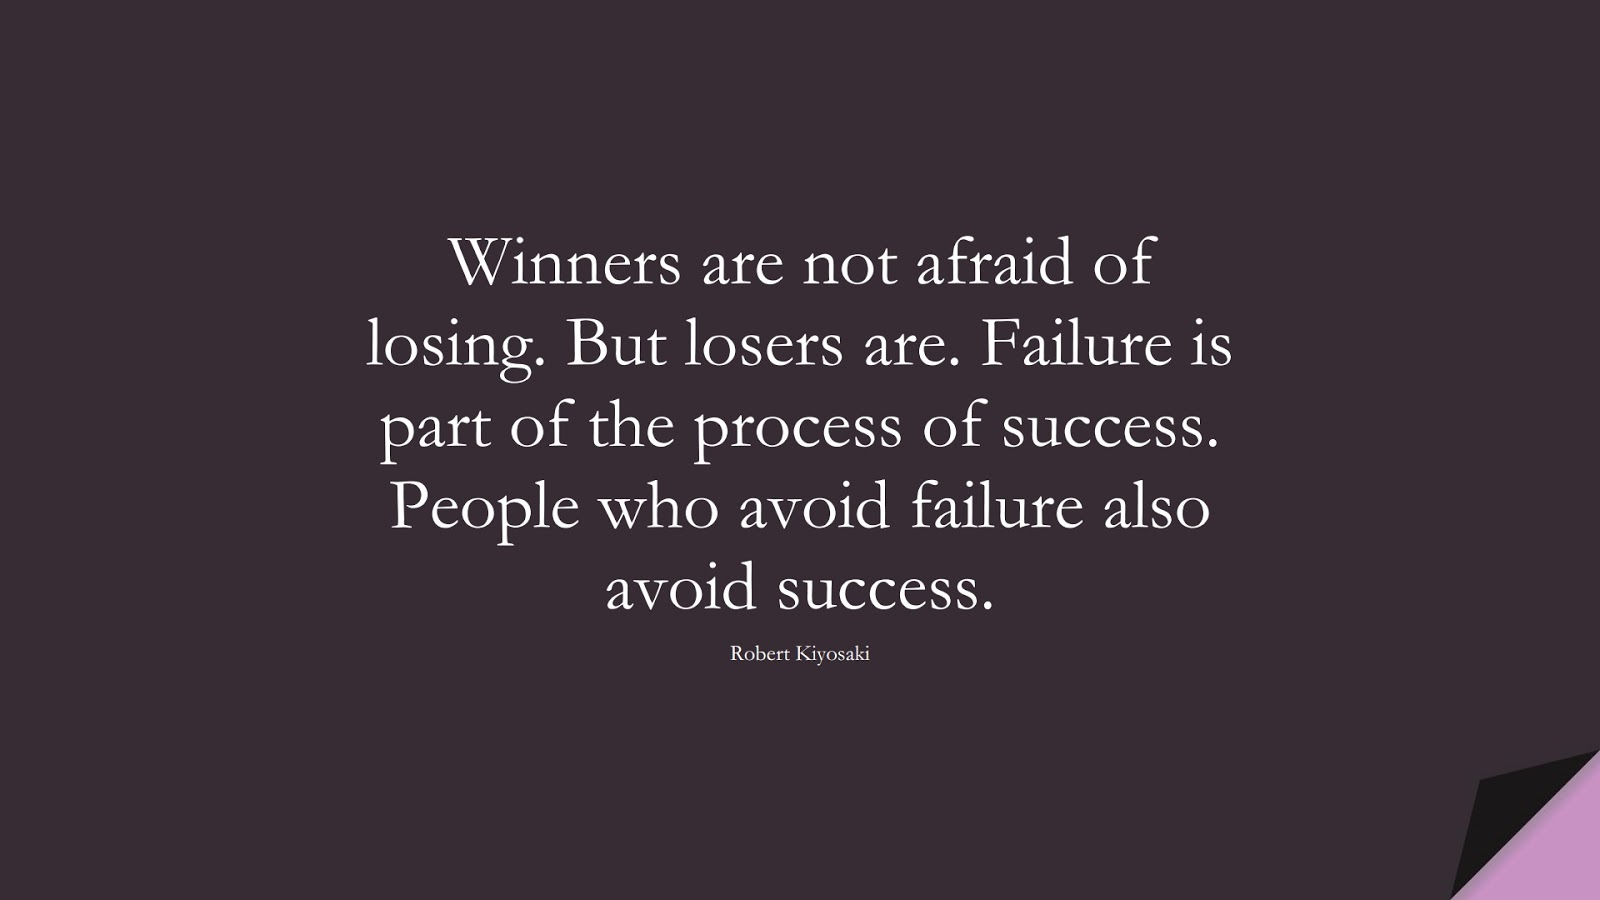 Winners are not afraid of losing. But losers are. Failure is part of the process of success. People who avoid failure also avoid success. (Robert Kiyosaki);  #SuccessQuotes